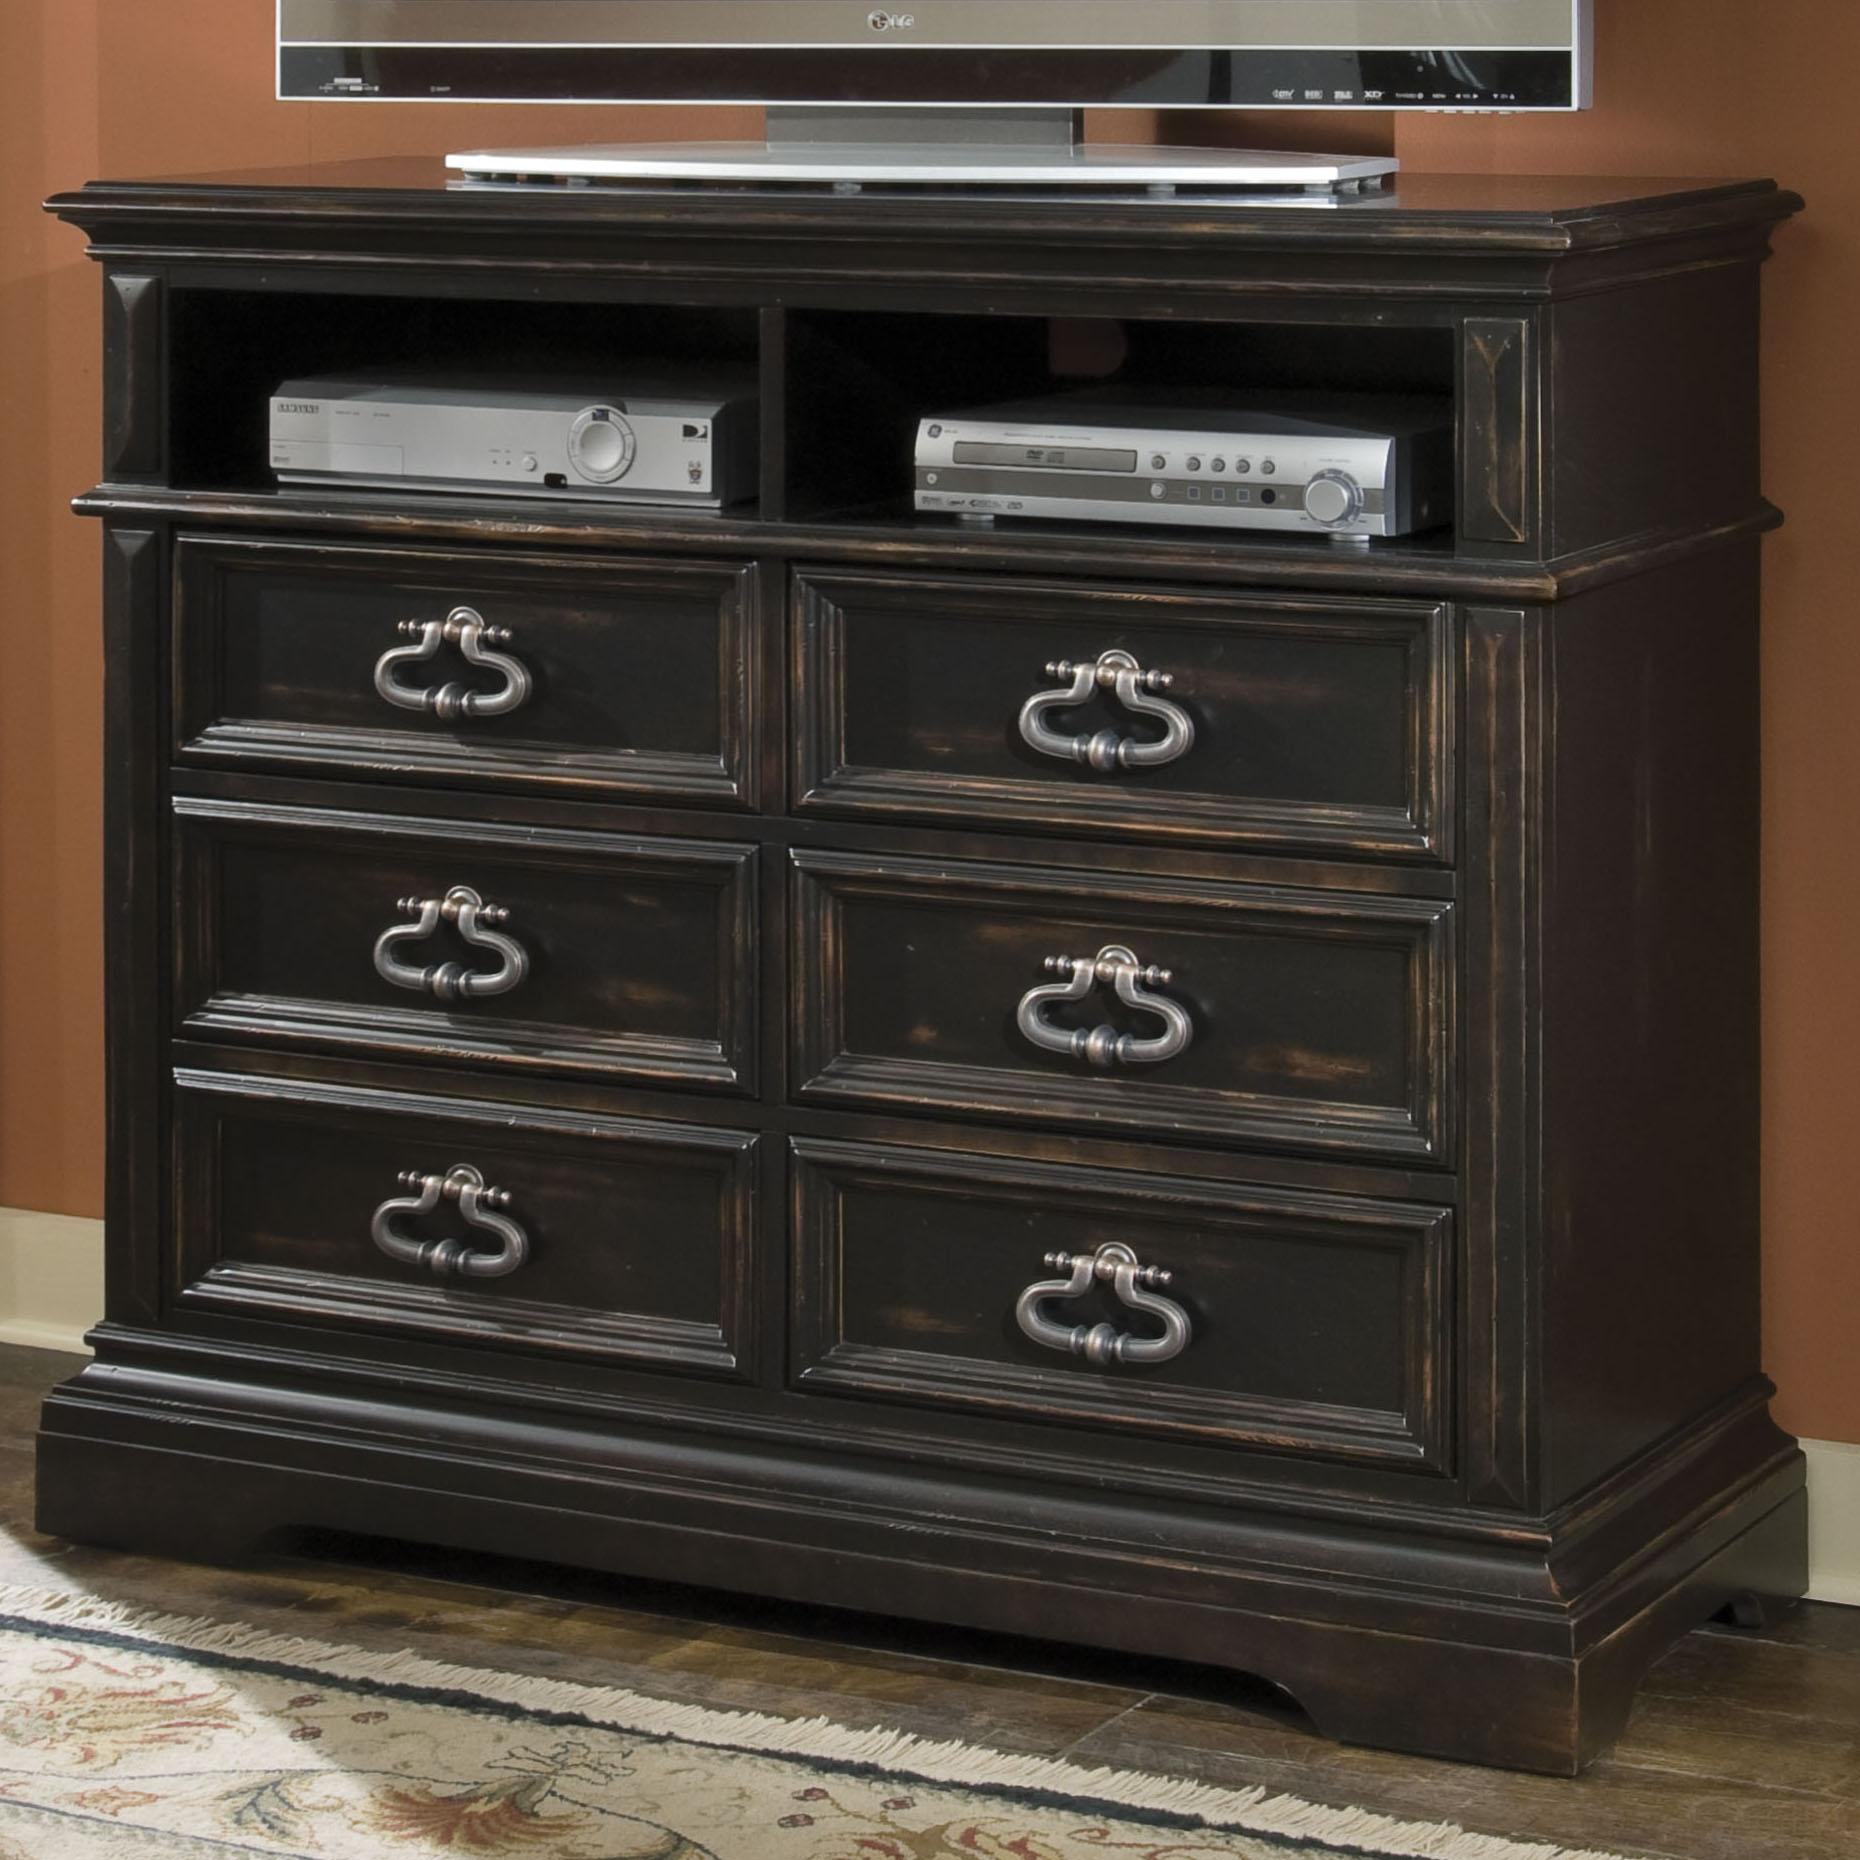 Pulaski Furniture Brookfield Brookfield Media Chest - Item Number: 993145